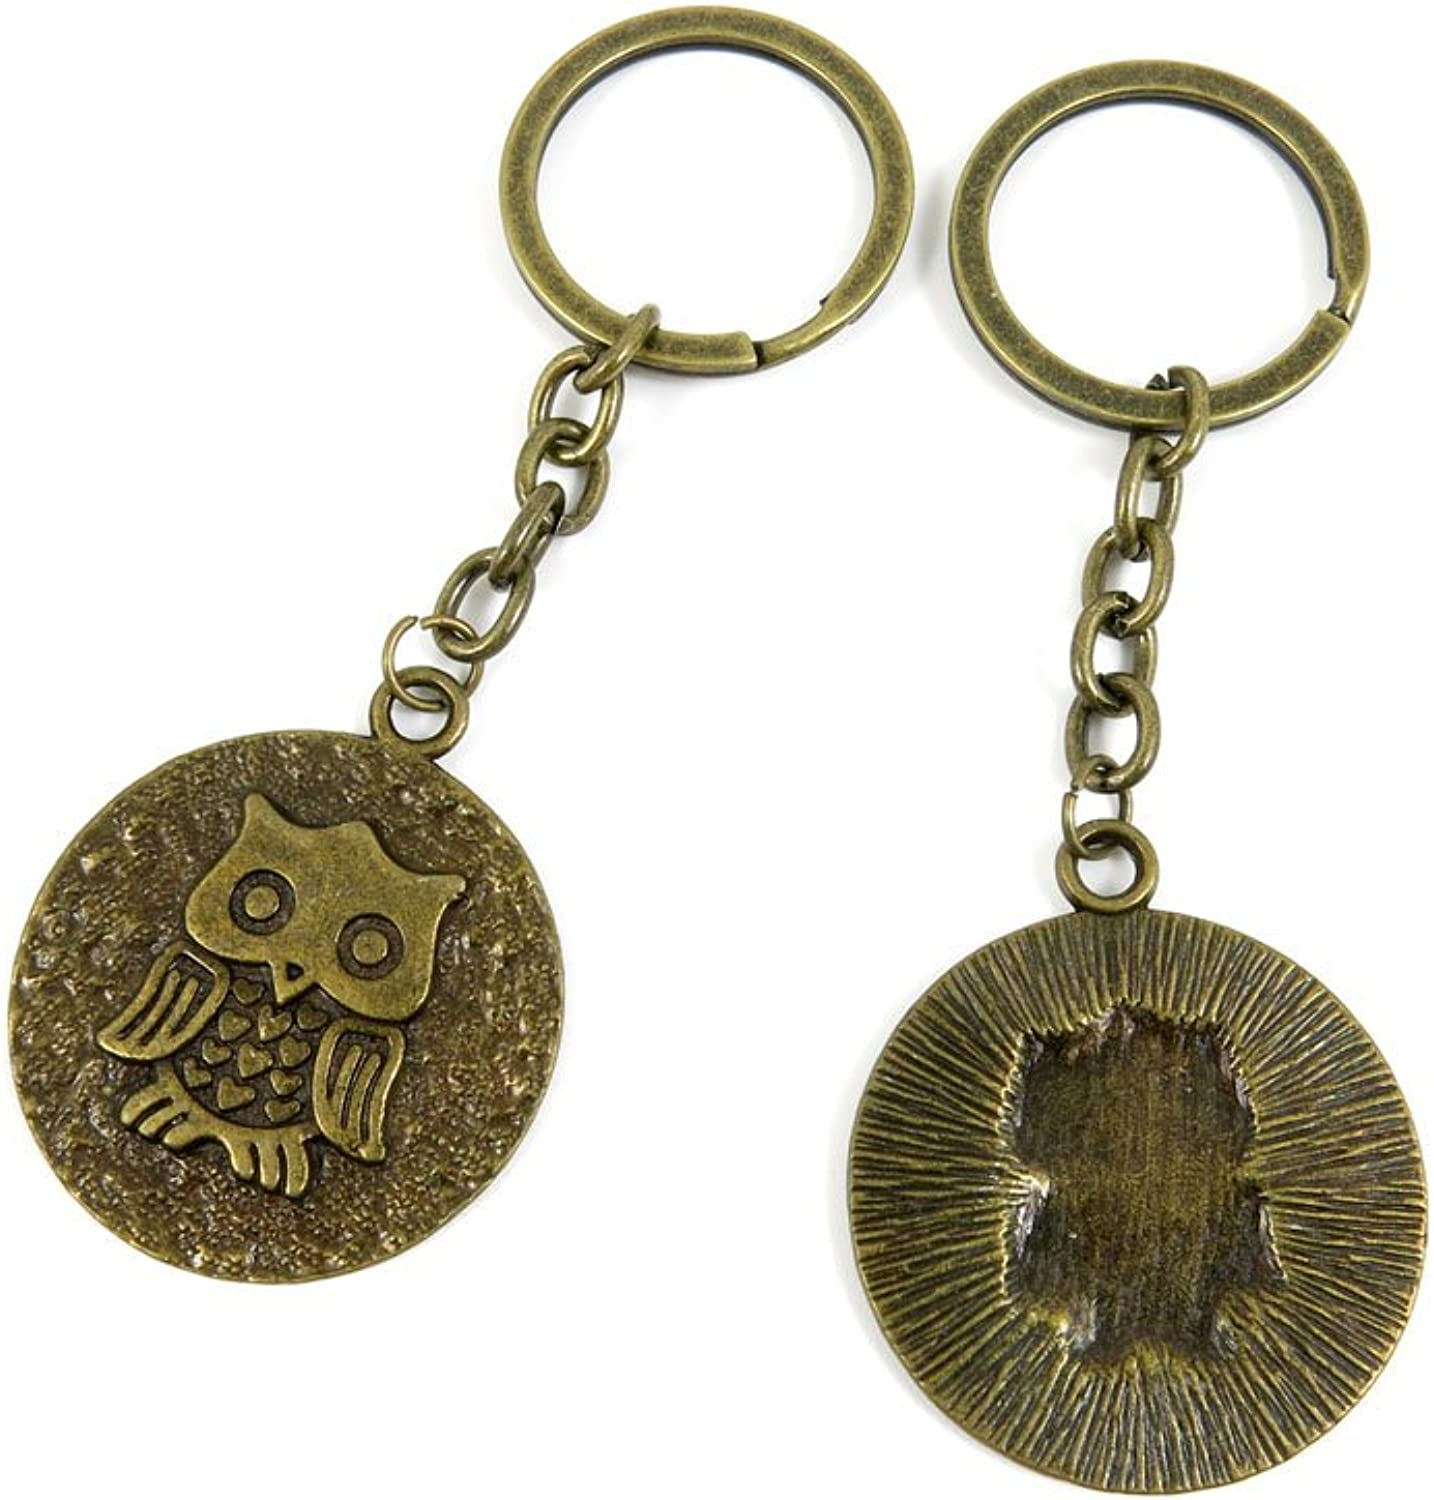 100 PCS Keyrings Keychains Key Ring Chains Tags Jewelry Findings Clasps Buckles Supplies E5UF2 Owl Signs